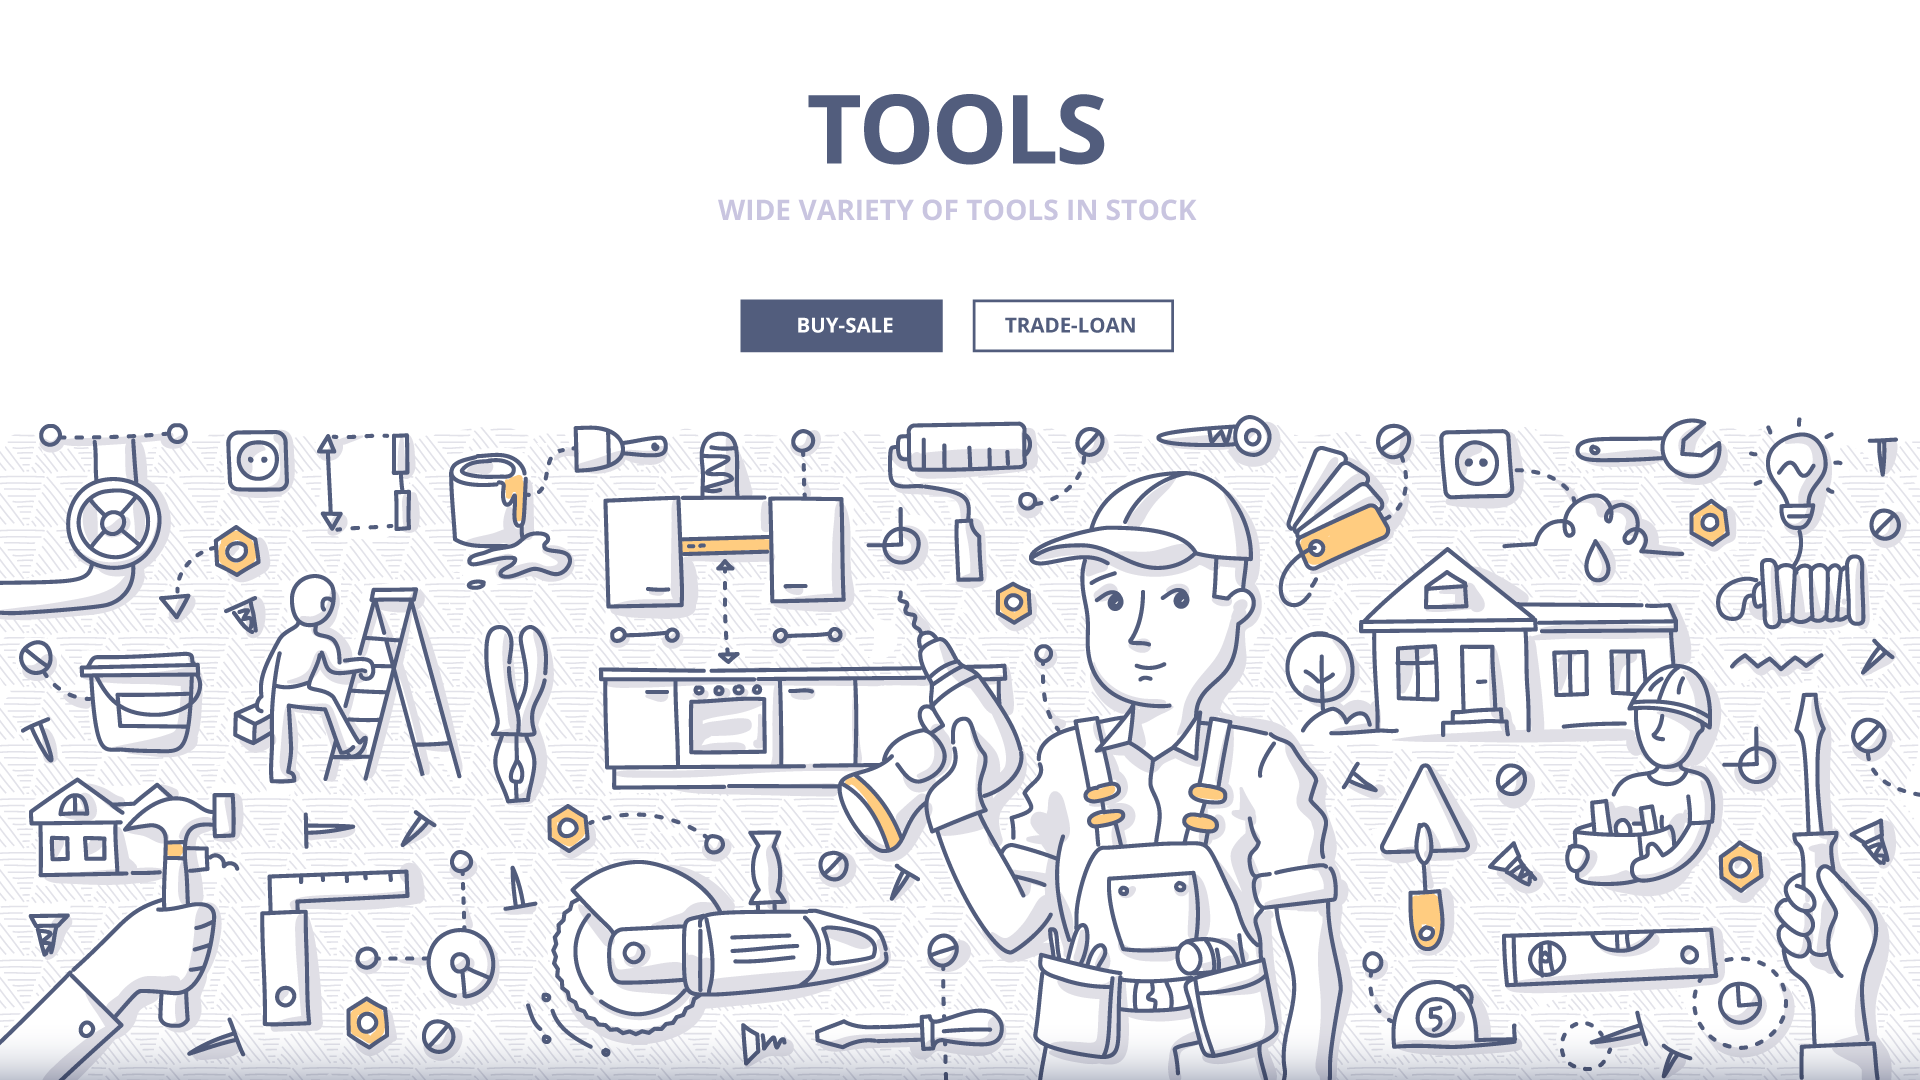 Tools doodle drawing